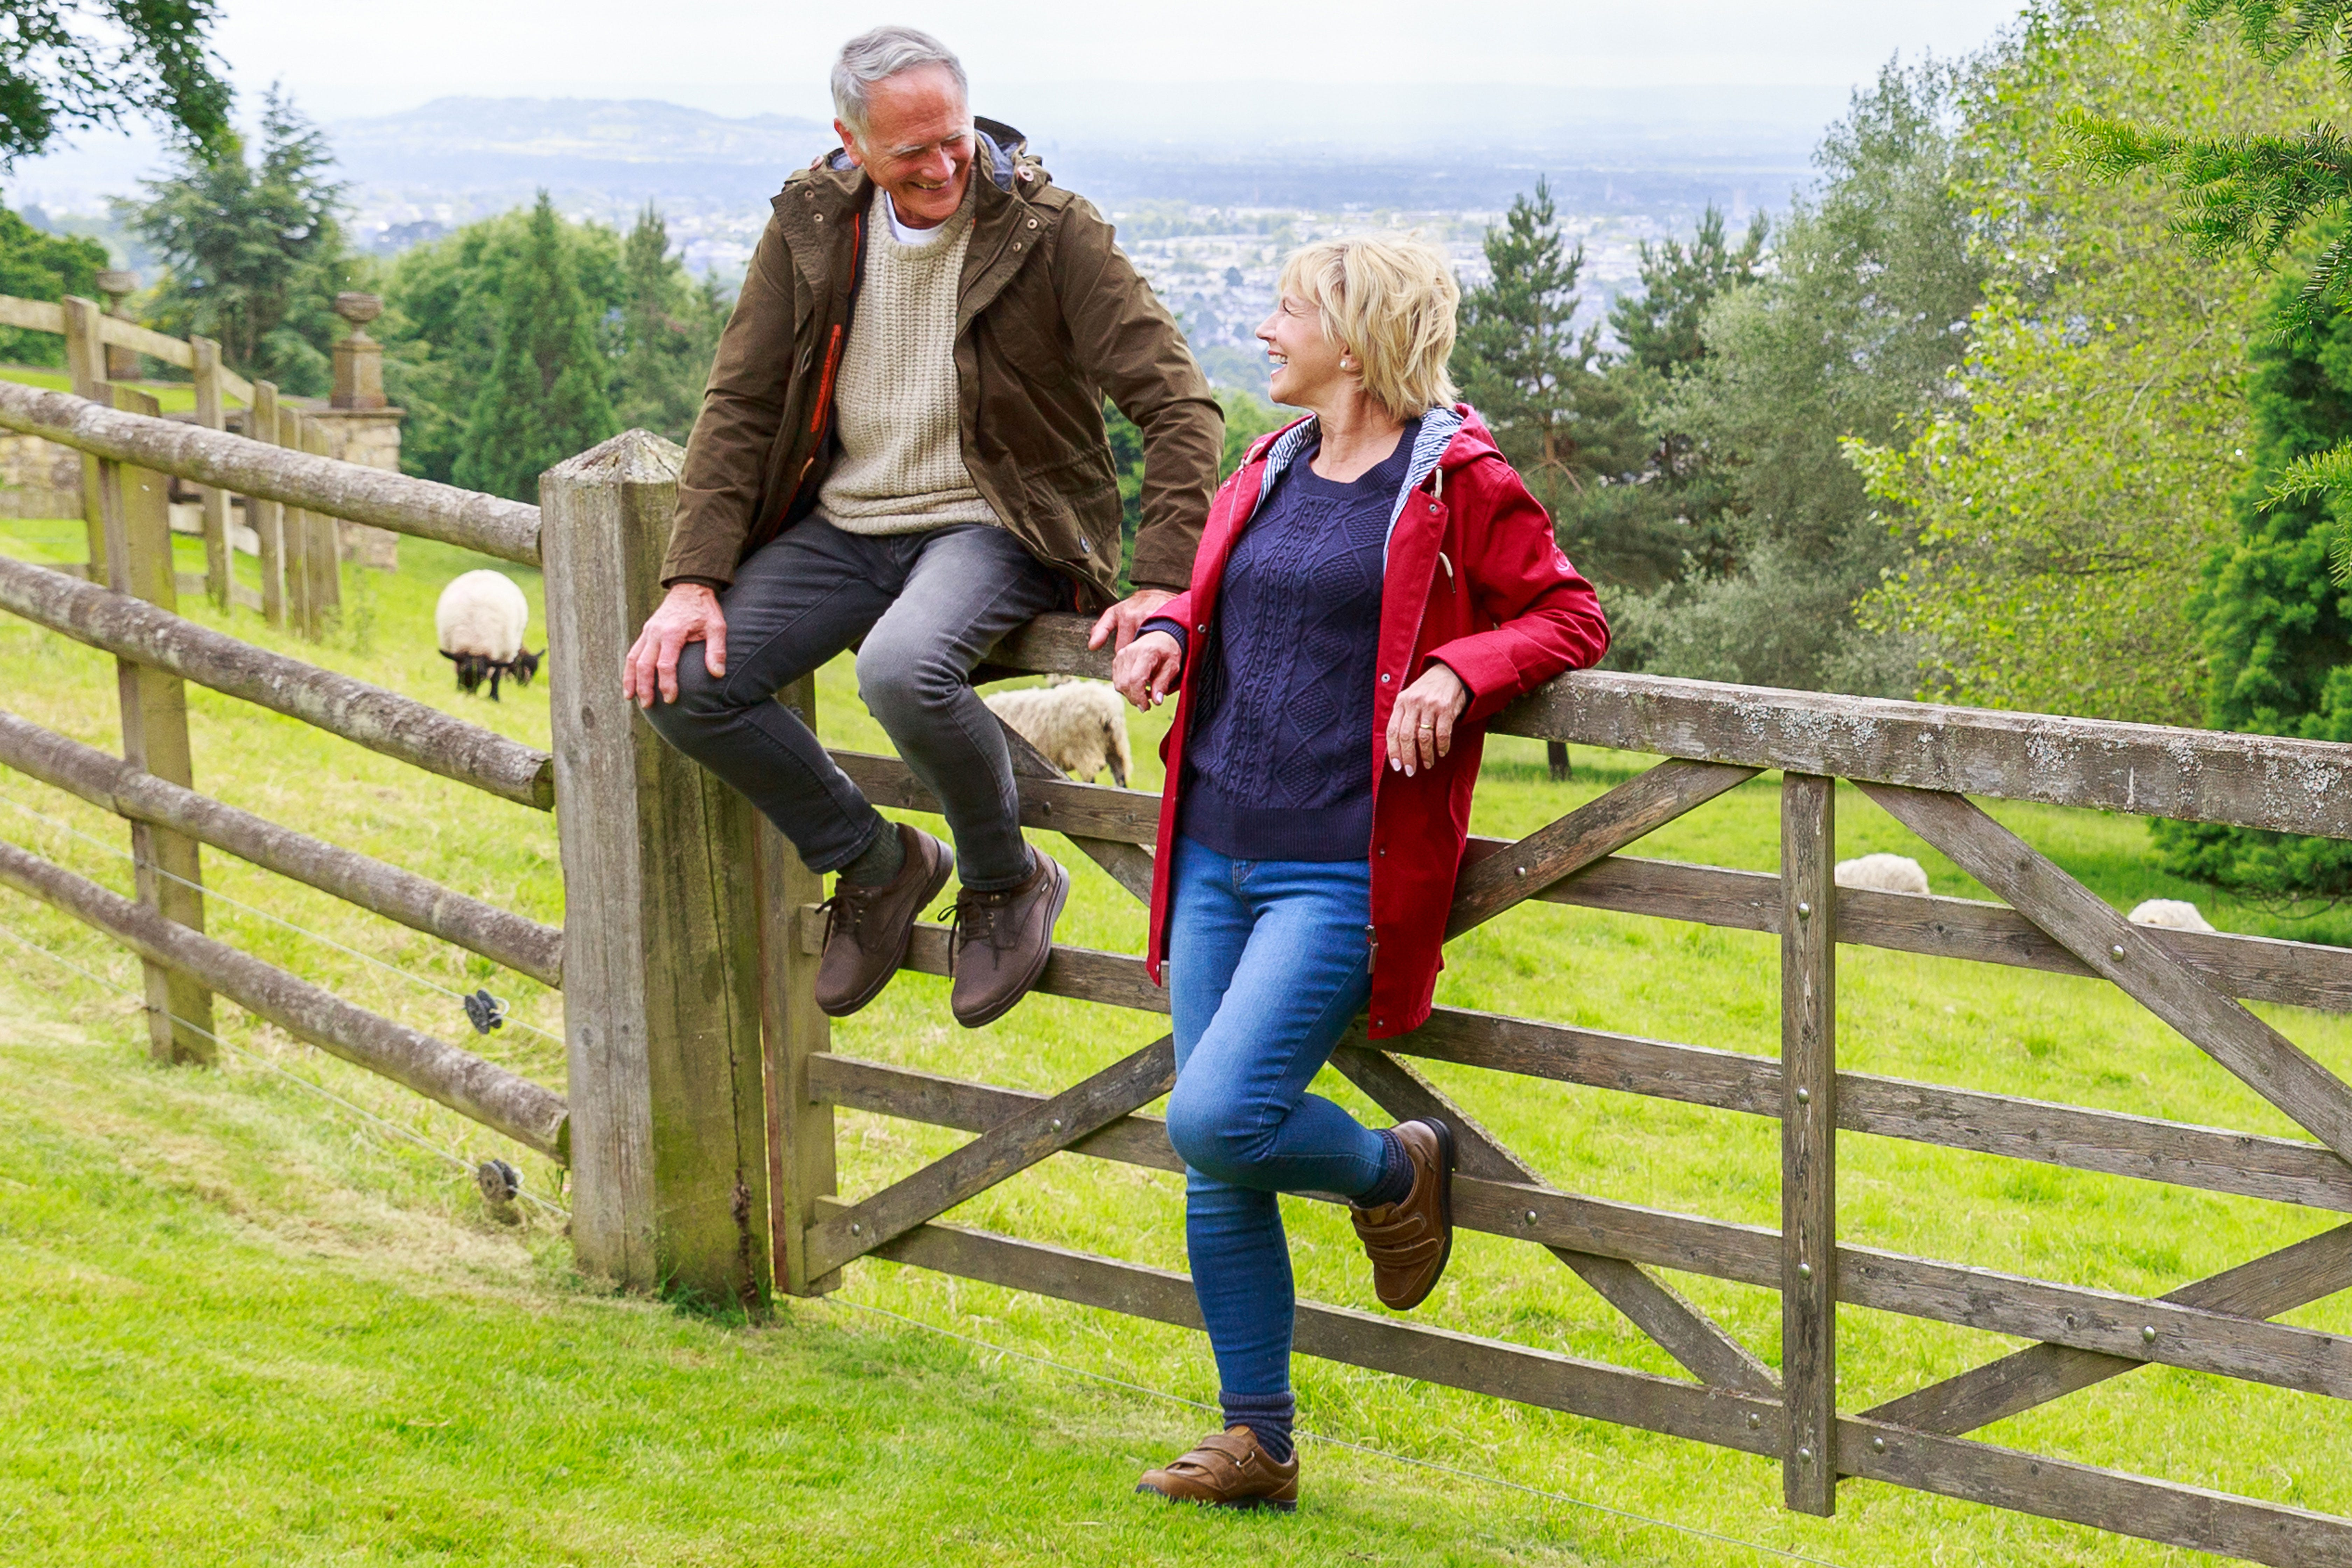 Man and woman sitting on gate in a field